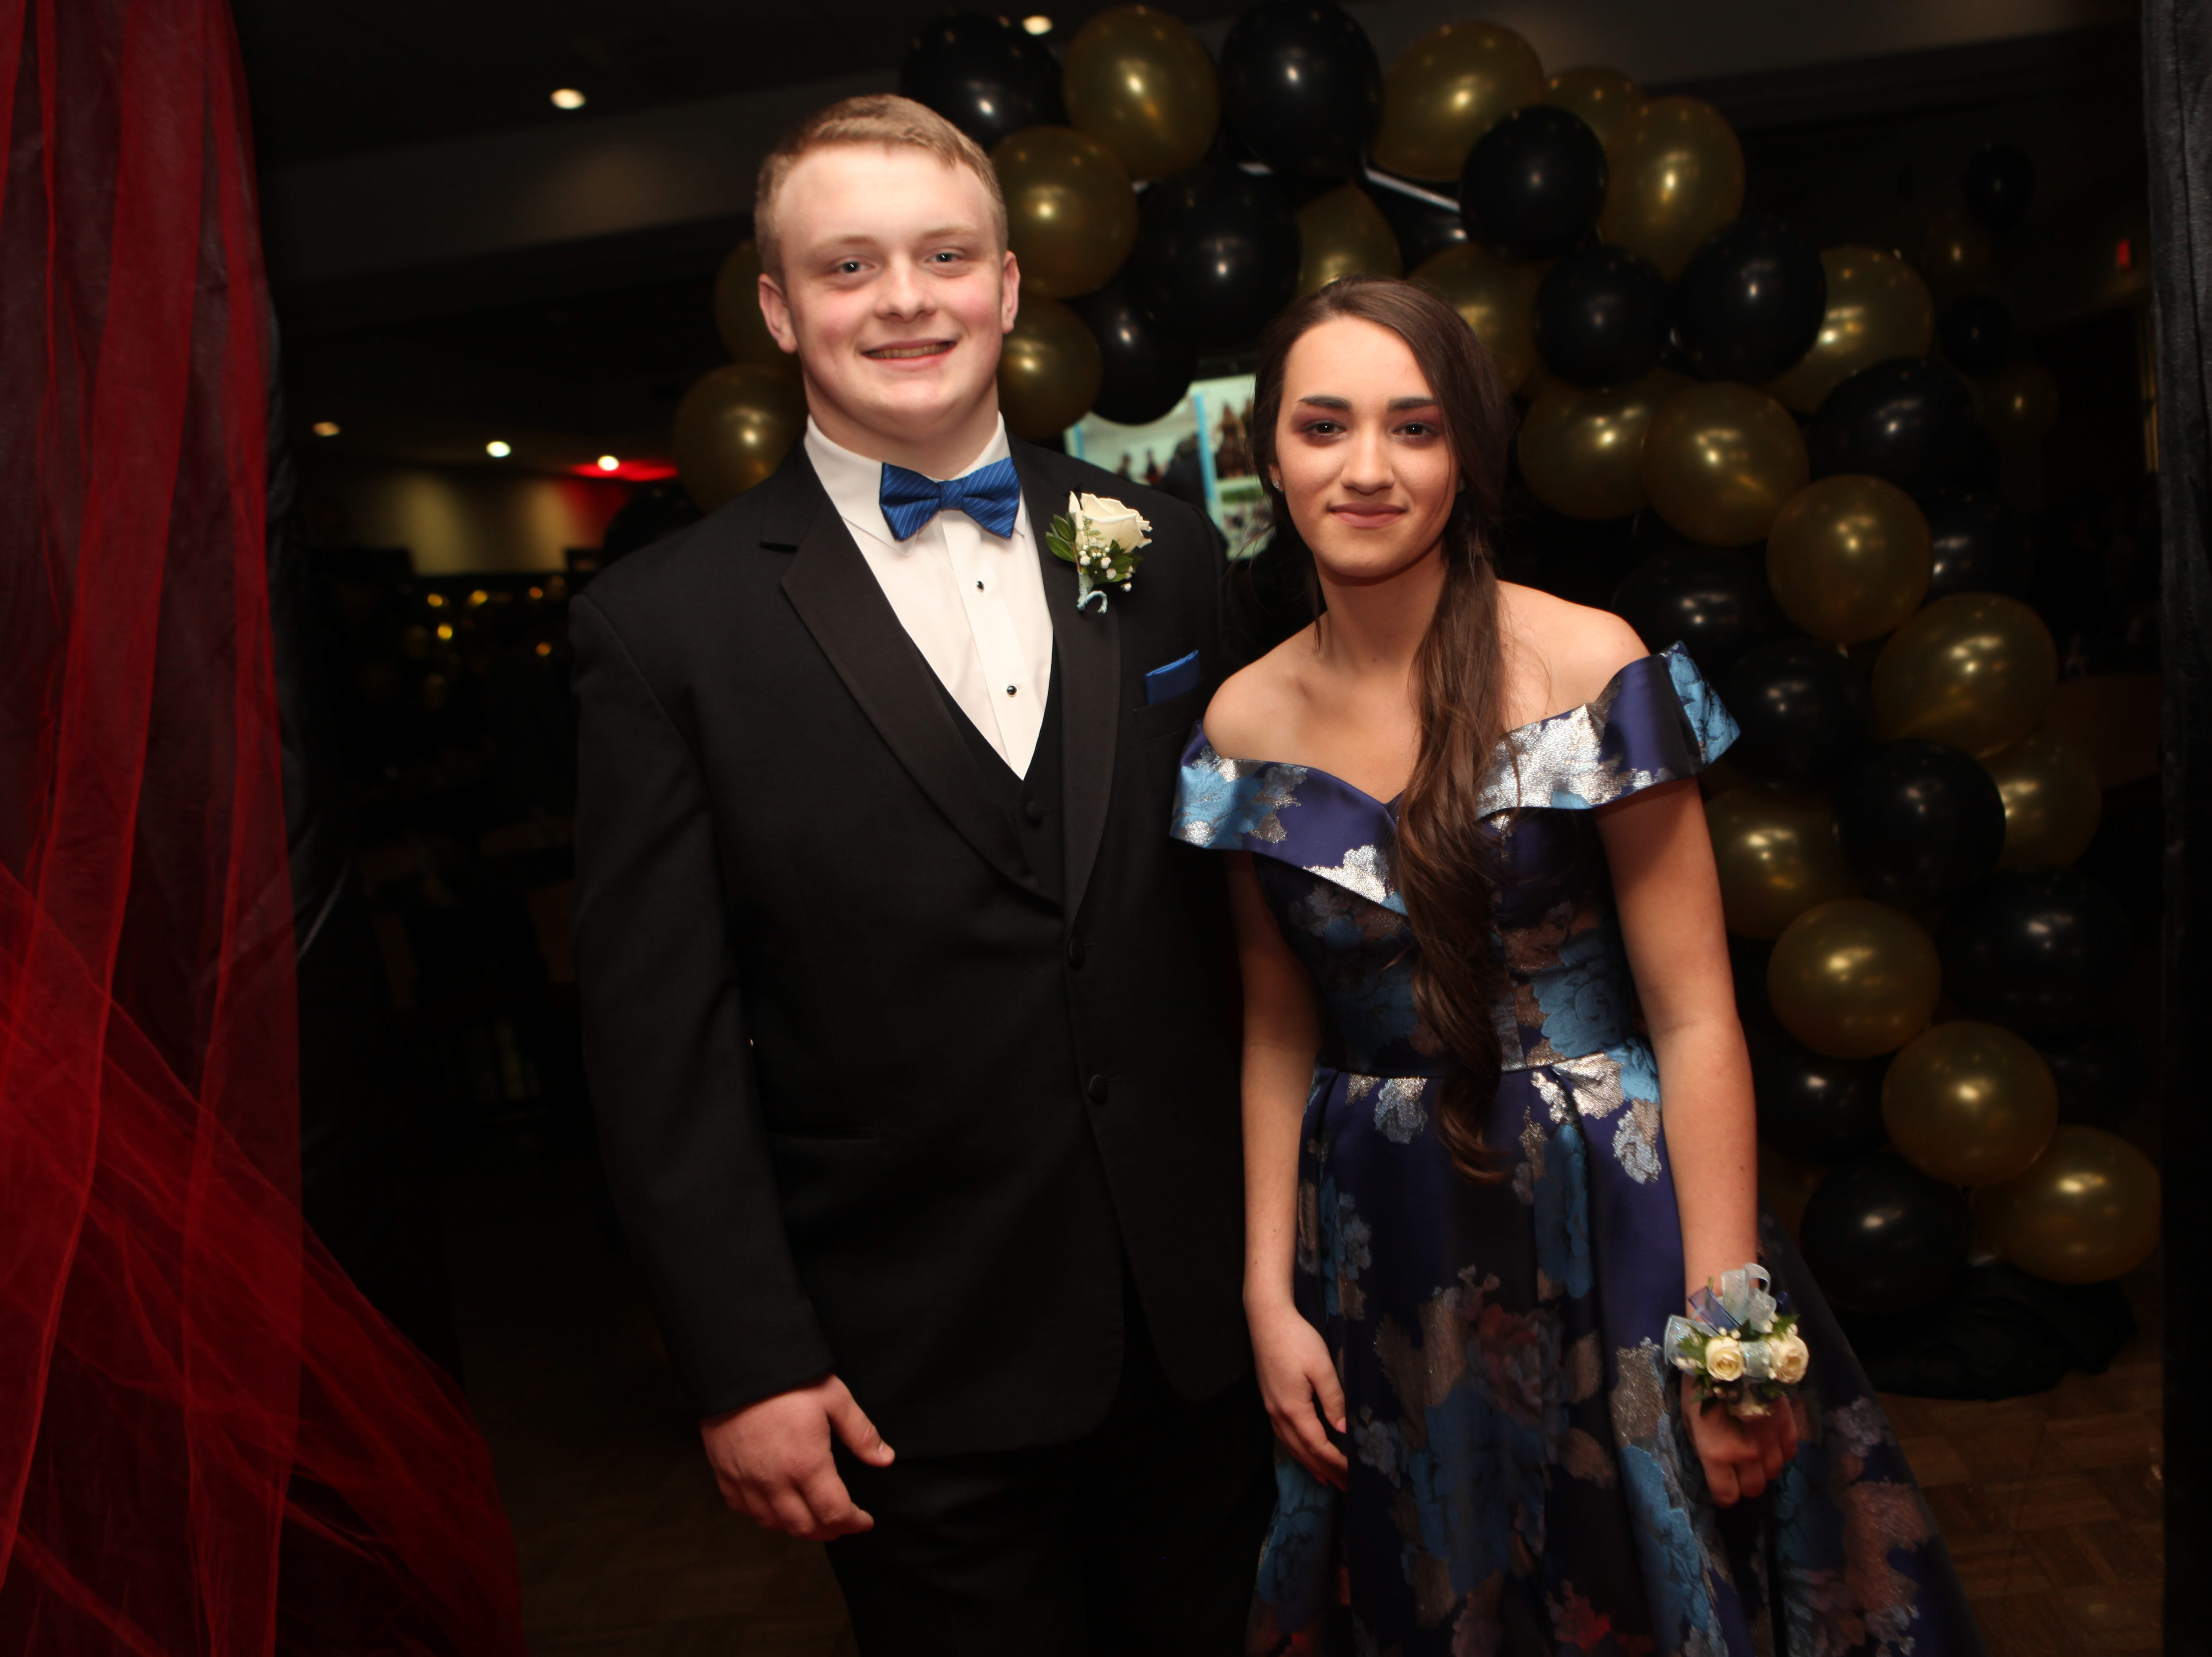 Parker Denton and Madison Harris at the Middle College 2019 prom at the APSU Ballroom on Friday, April 26, 2019.